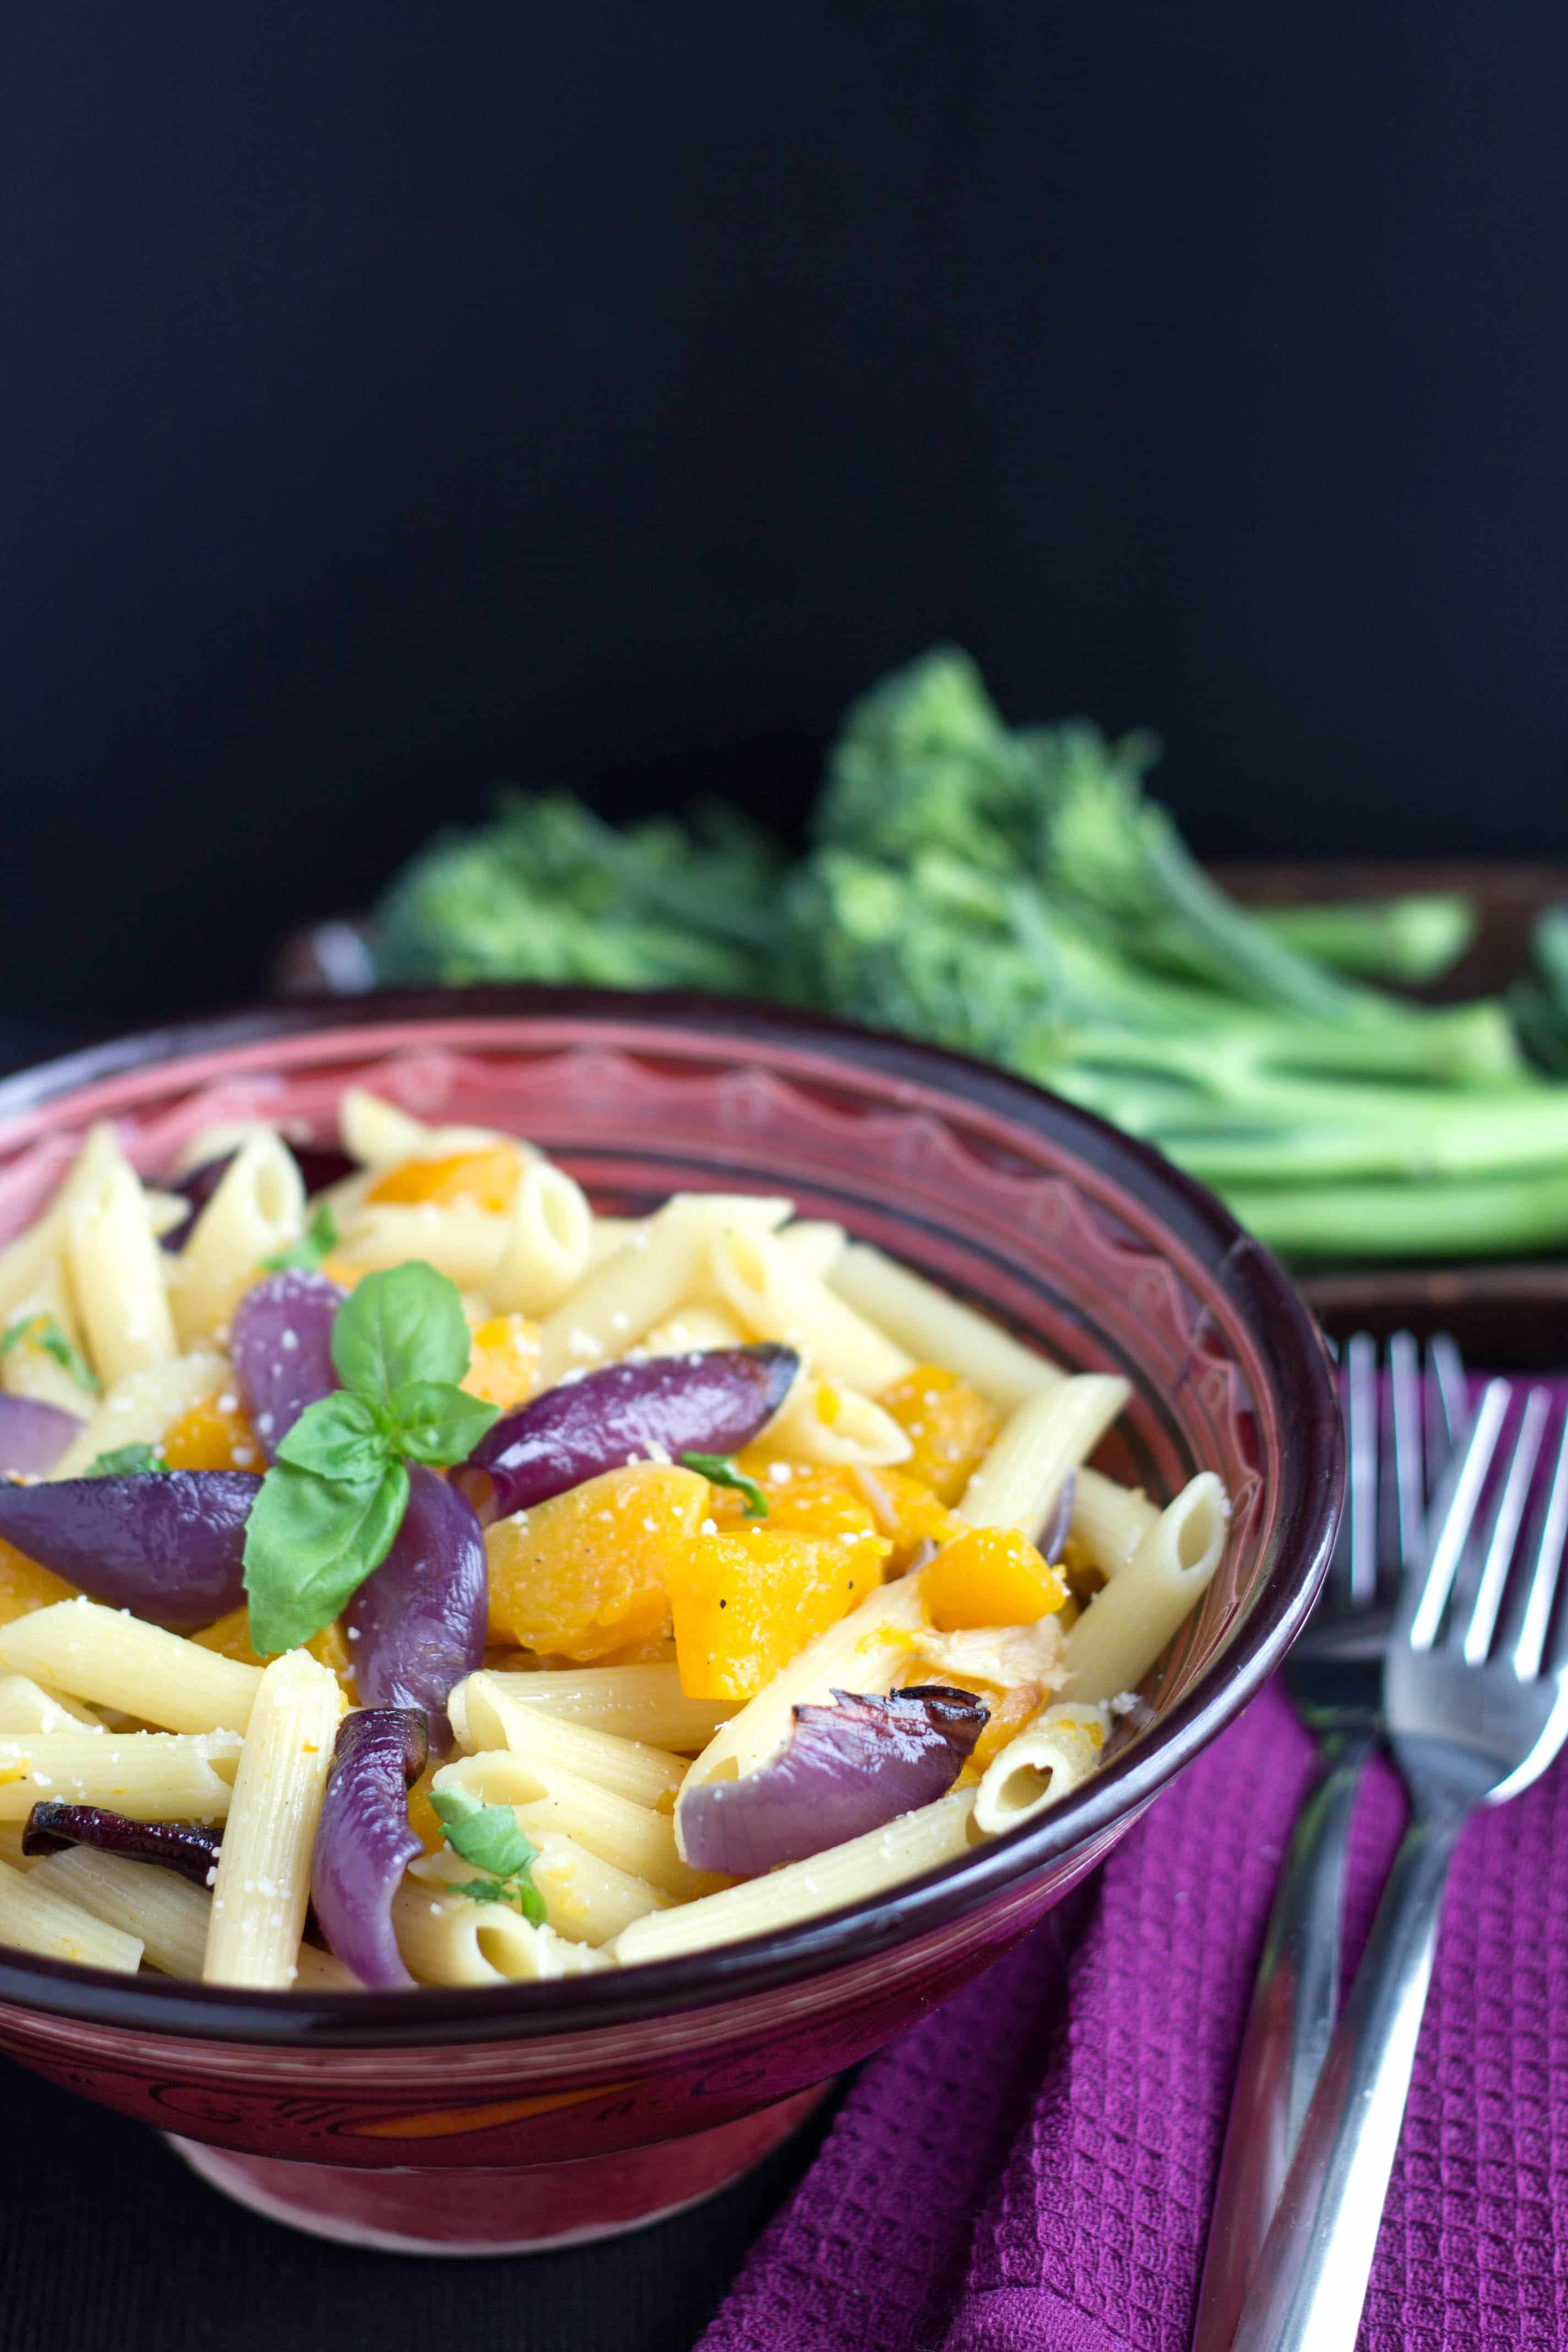 Roasted Squash & Red Onion Pasta - Erren's Kitchen - This recipe makes a satisfying and healthy supper that gives pasta an autumnal twist.